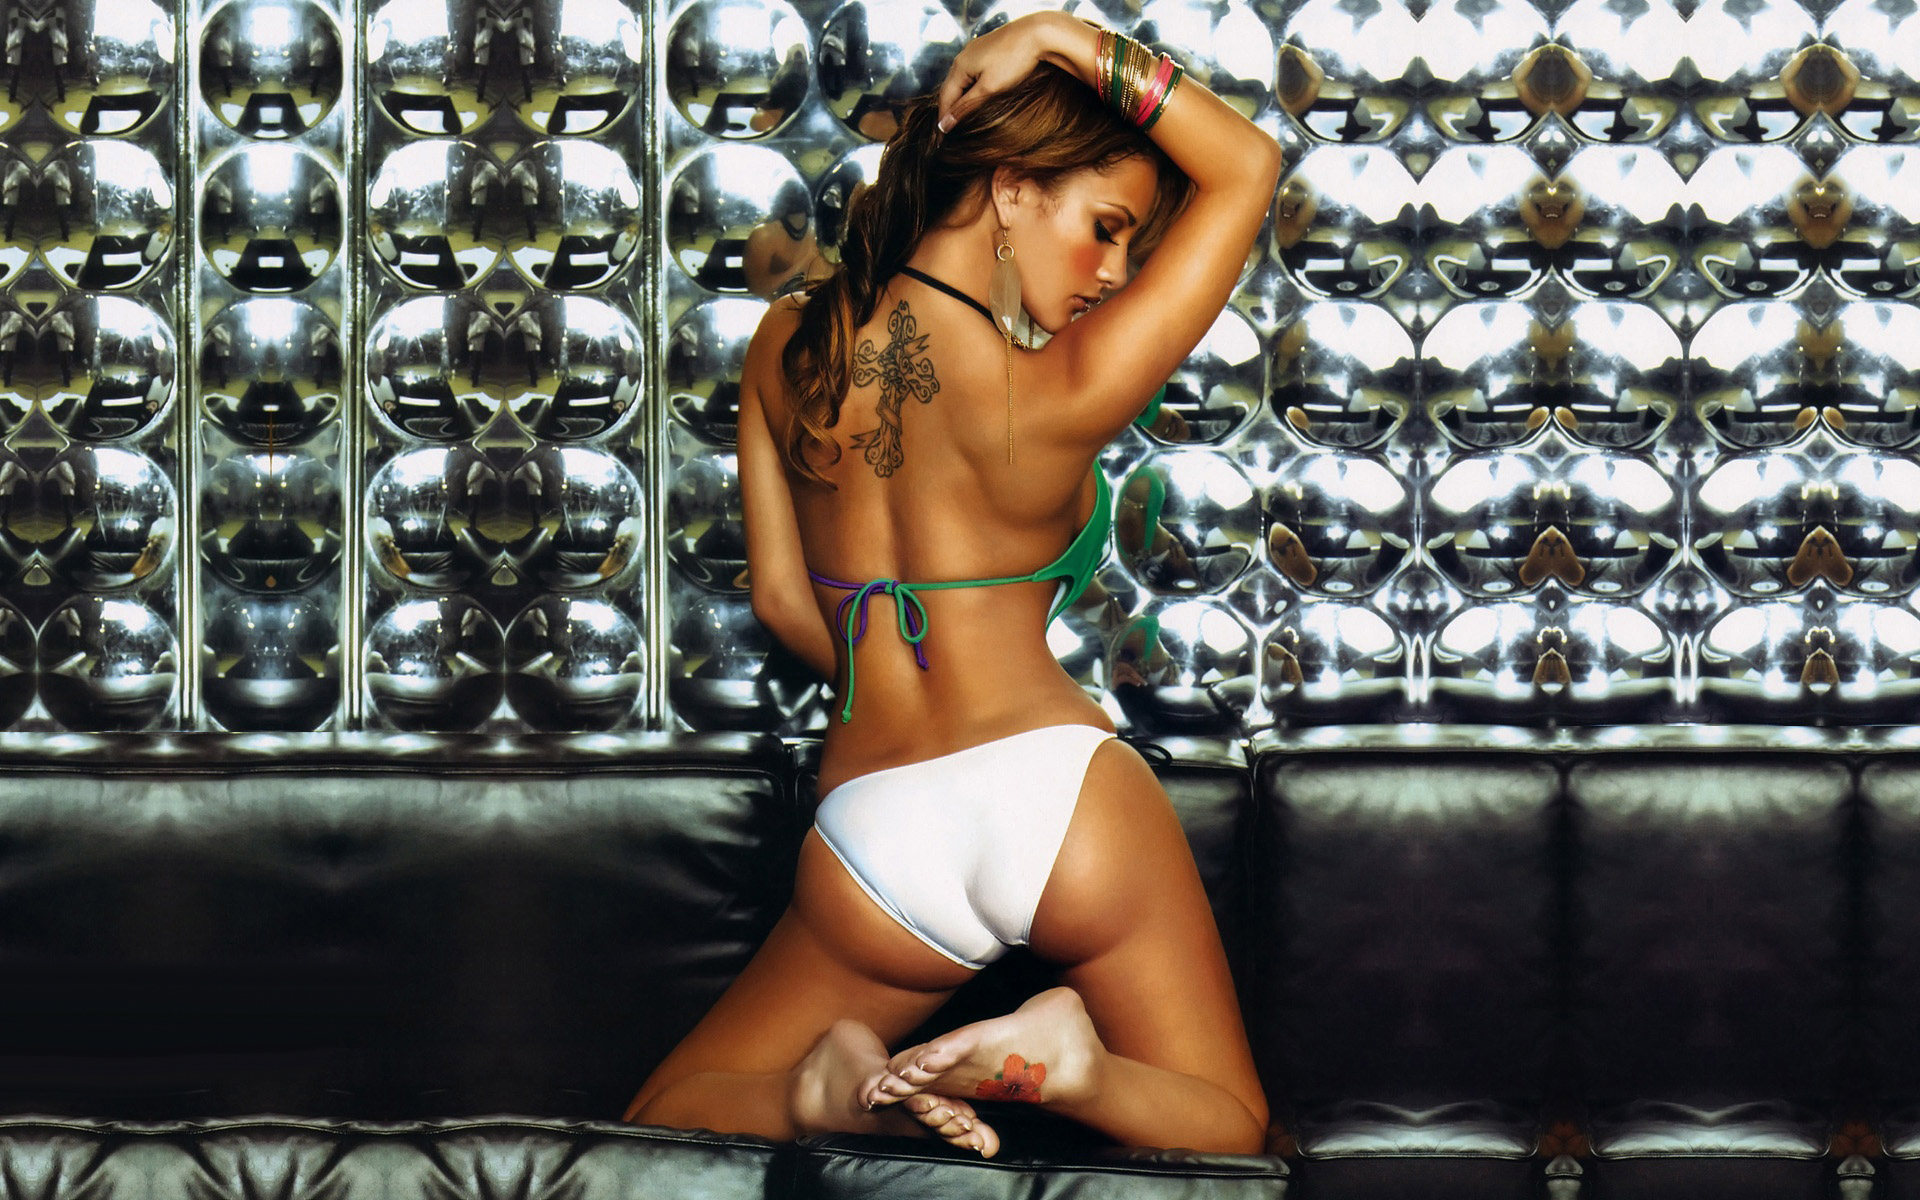 Brittany Dailey Hot Hd Widescreen Wallpapers